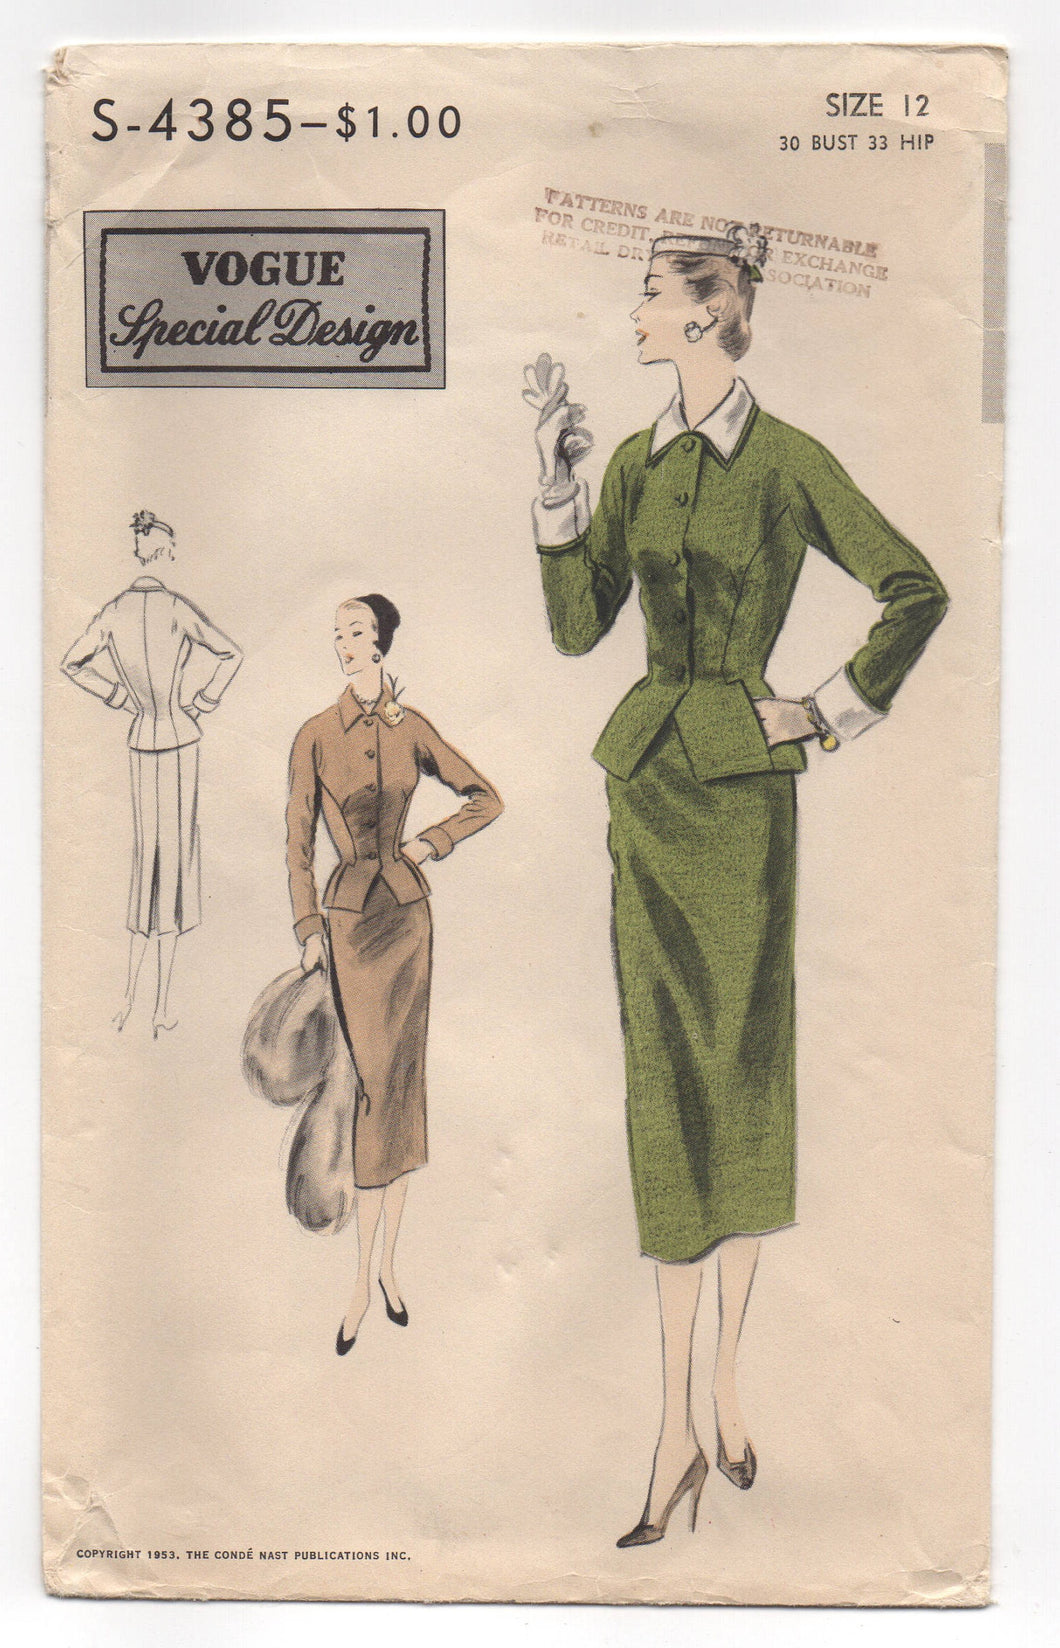 1950's Vogue Special Design Two-Piece Suit with wide peplum Pattern - Bust 30